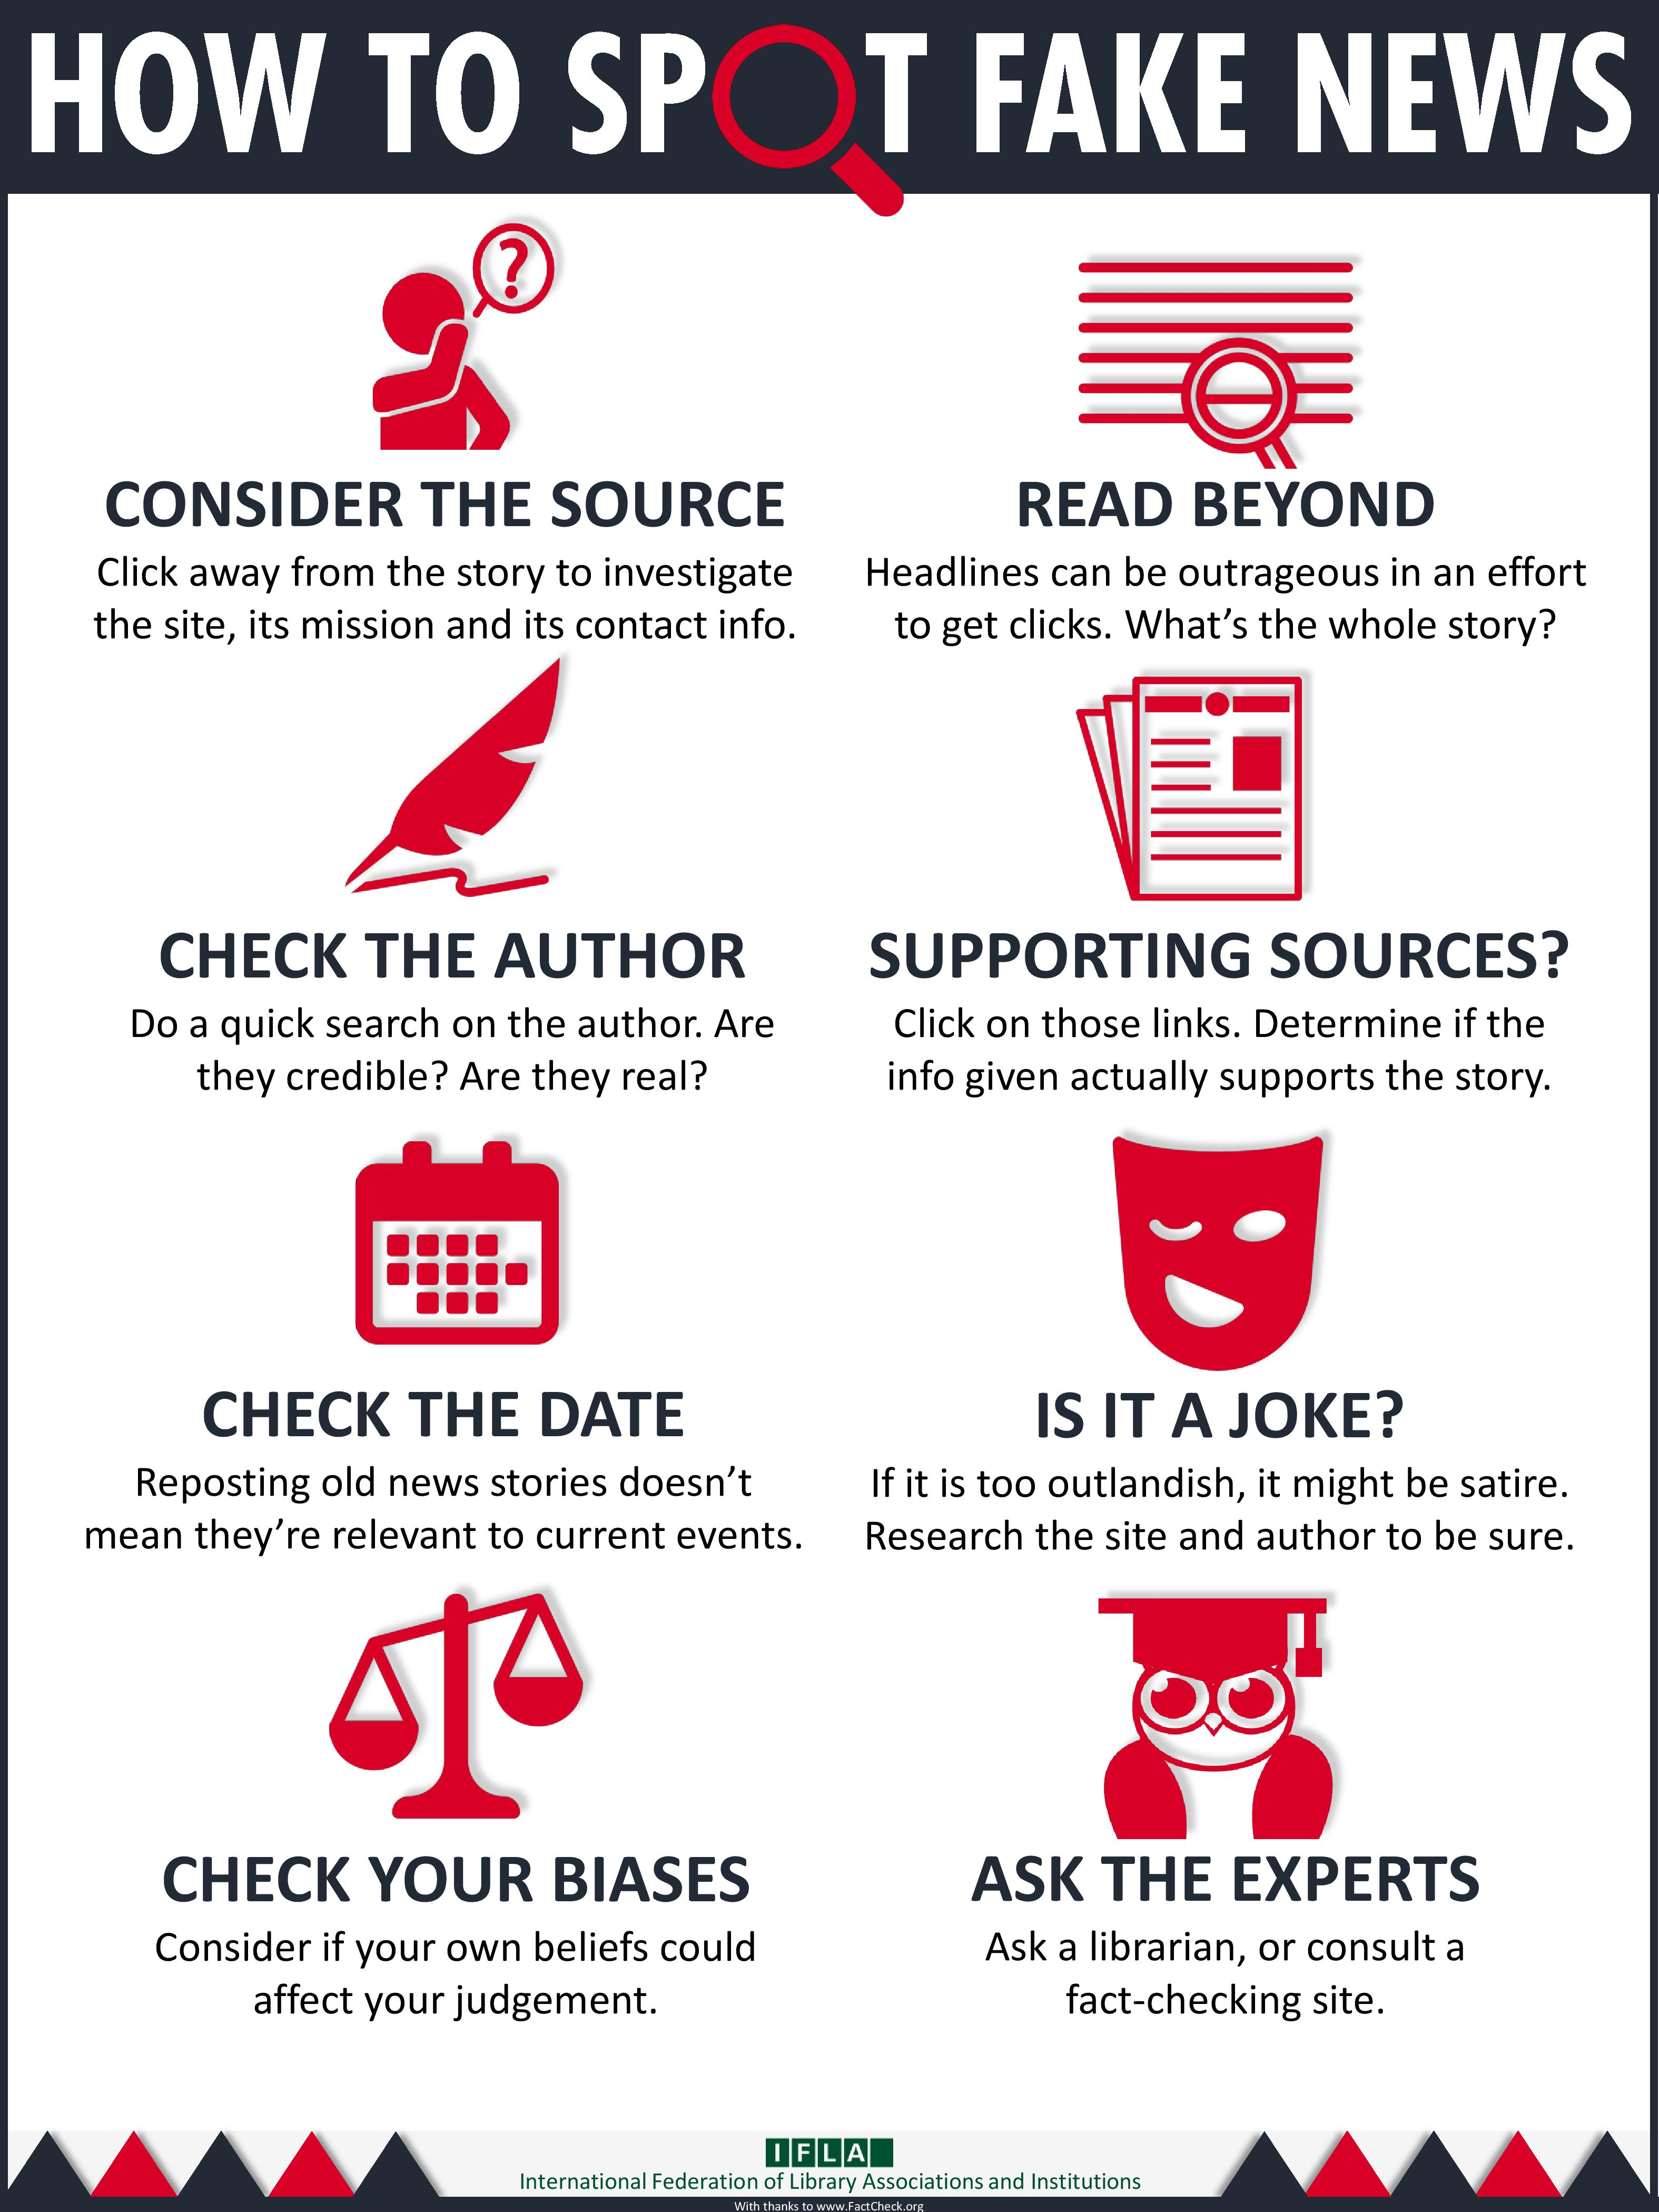 Advice on how to spot fake news